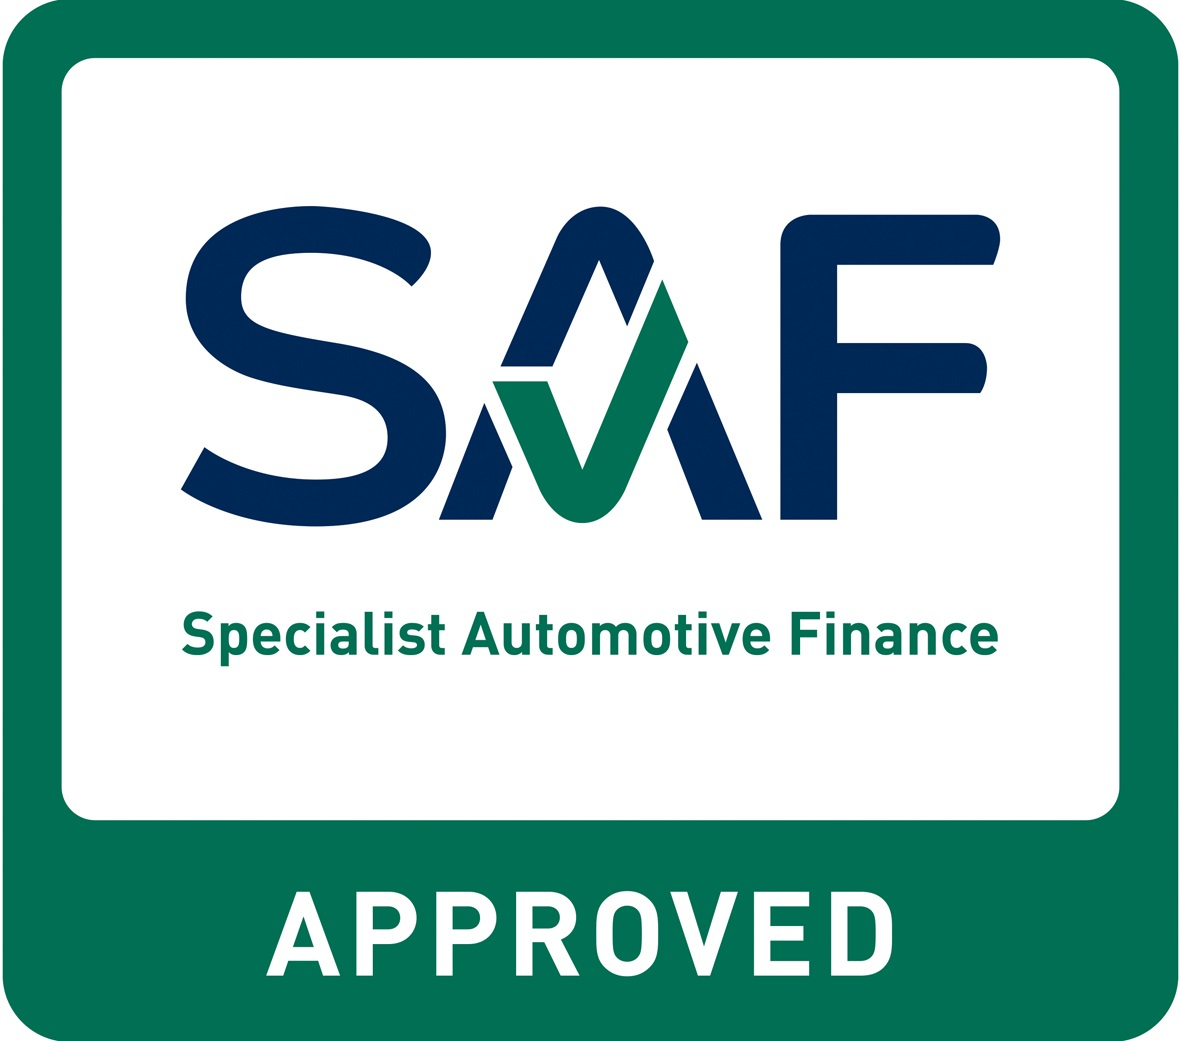 Specialist Automotive Finance